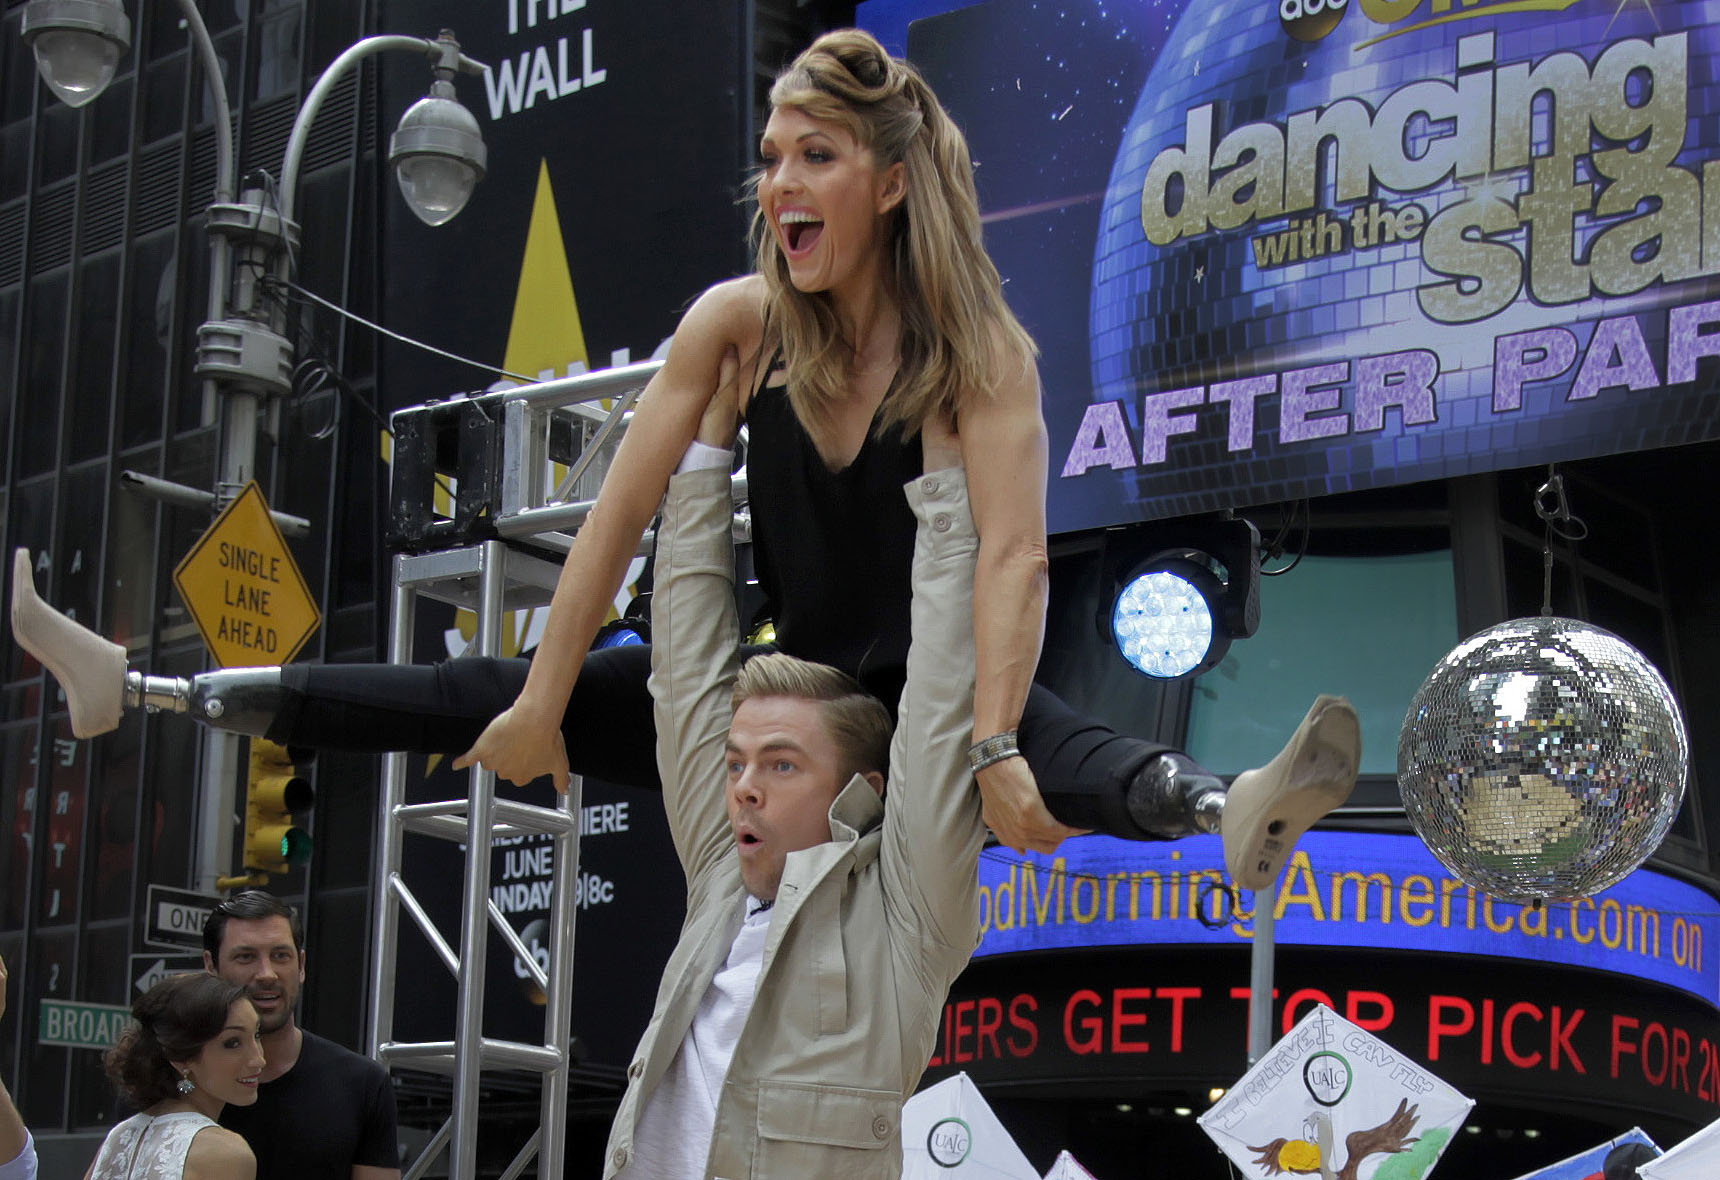 Photo: Amy Purdy with 'Dancing With The Stars' partner Derek Hough